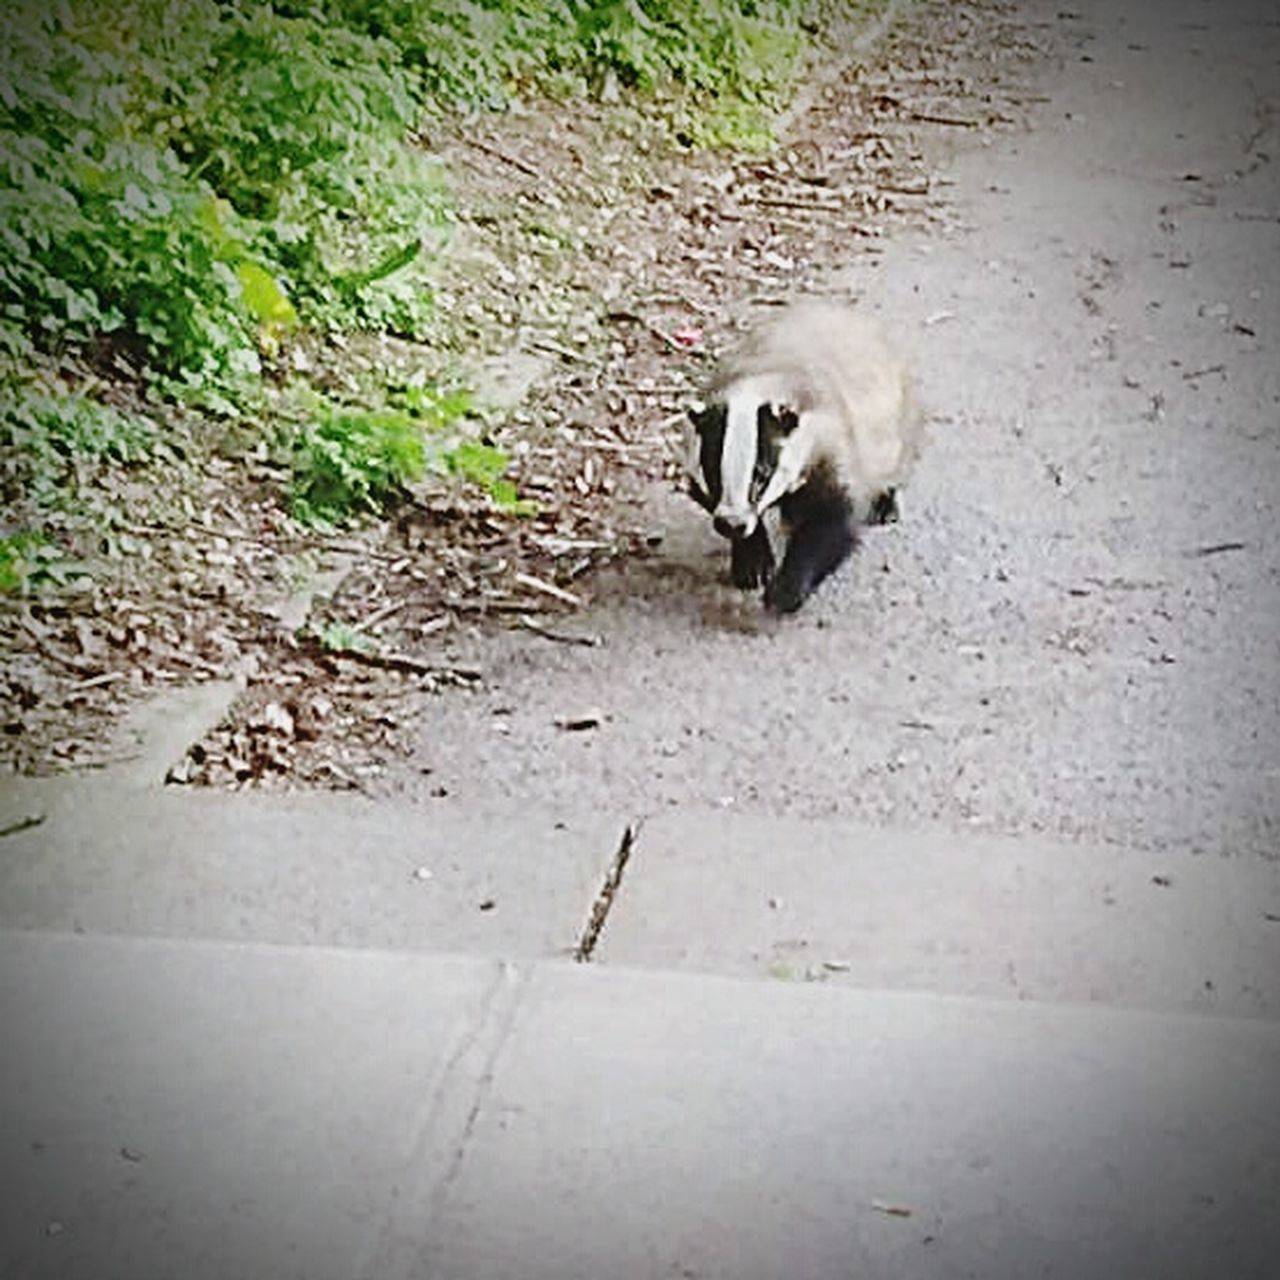 Animal Themes One Animal High Angle View Mammal Outdoors Day Animals In The Wild No People Nature Rural Scene Badger My Local Badger